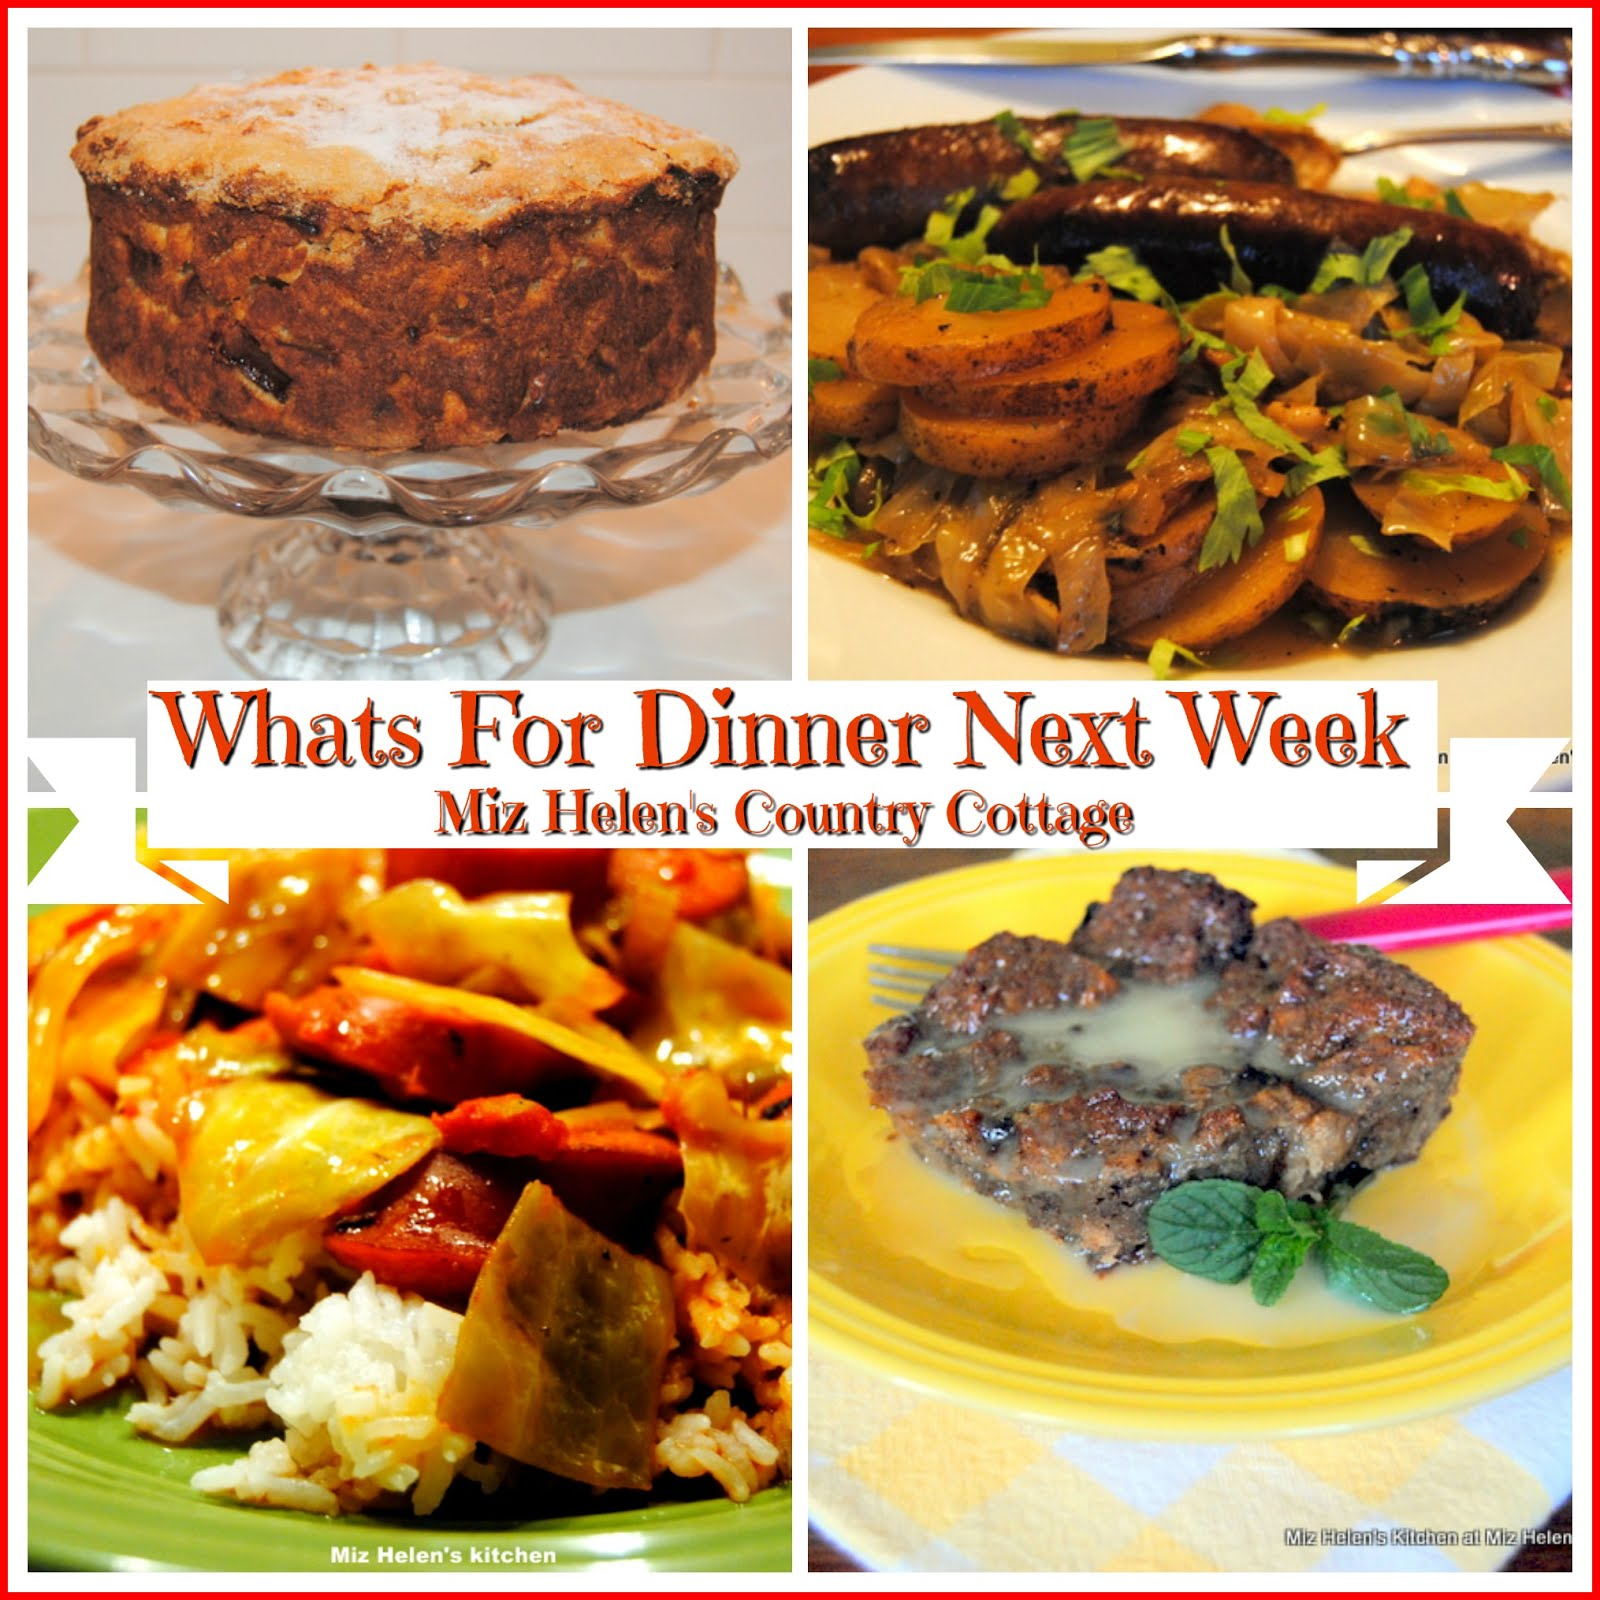 Whats For Dinner Next Week * Week of 3-17-19